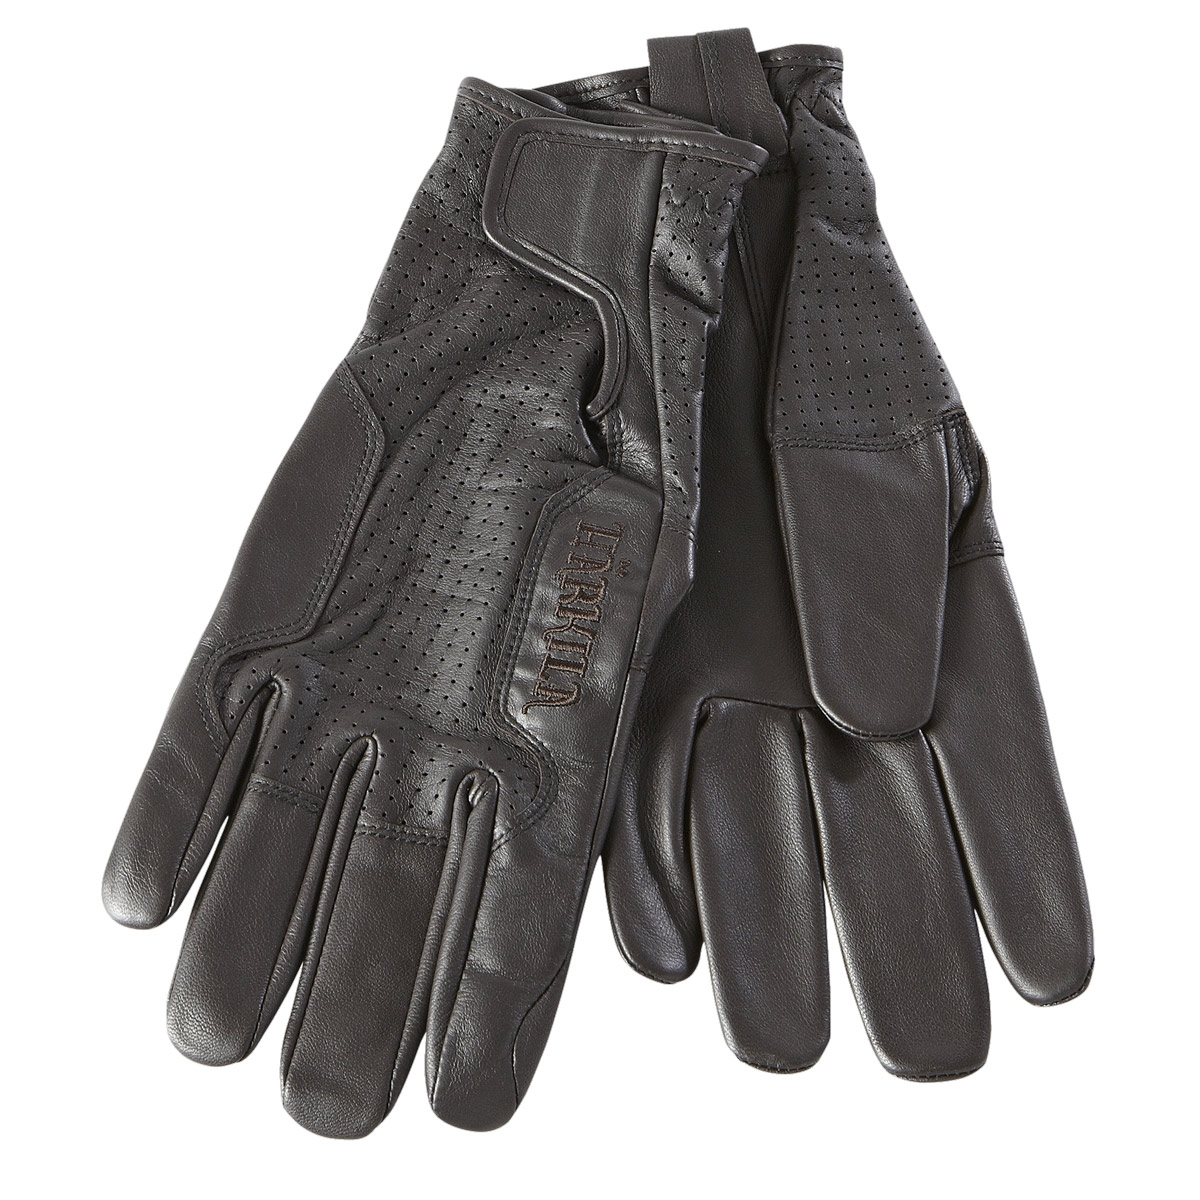 Ladies leather shooting gloves - Harkila Classic Shooting Gloves